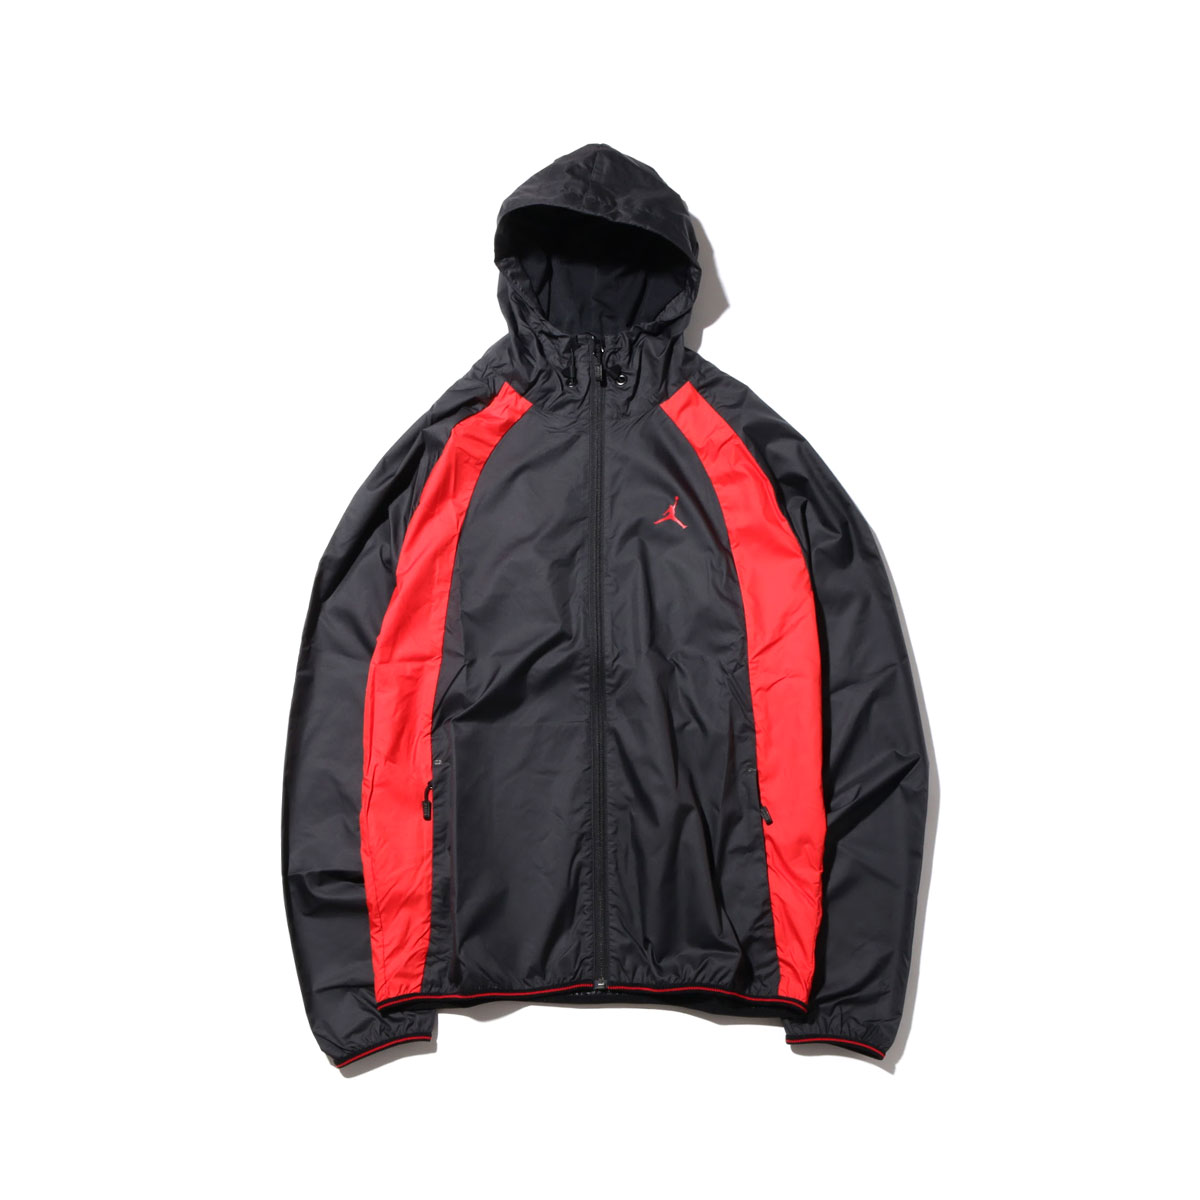 NIKE JSW WINGS WINDBREAKER(ナイキ ジョーダン JSW WINGS ウィンドブレーカー)(BLACK/BLACK/UNIVERSITY RED/(UNIVERSITY RED))【メンズ】17HO-S